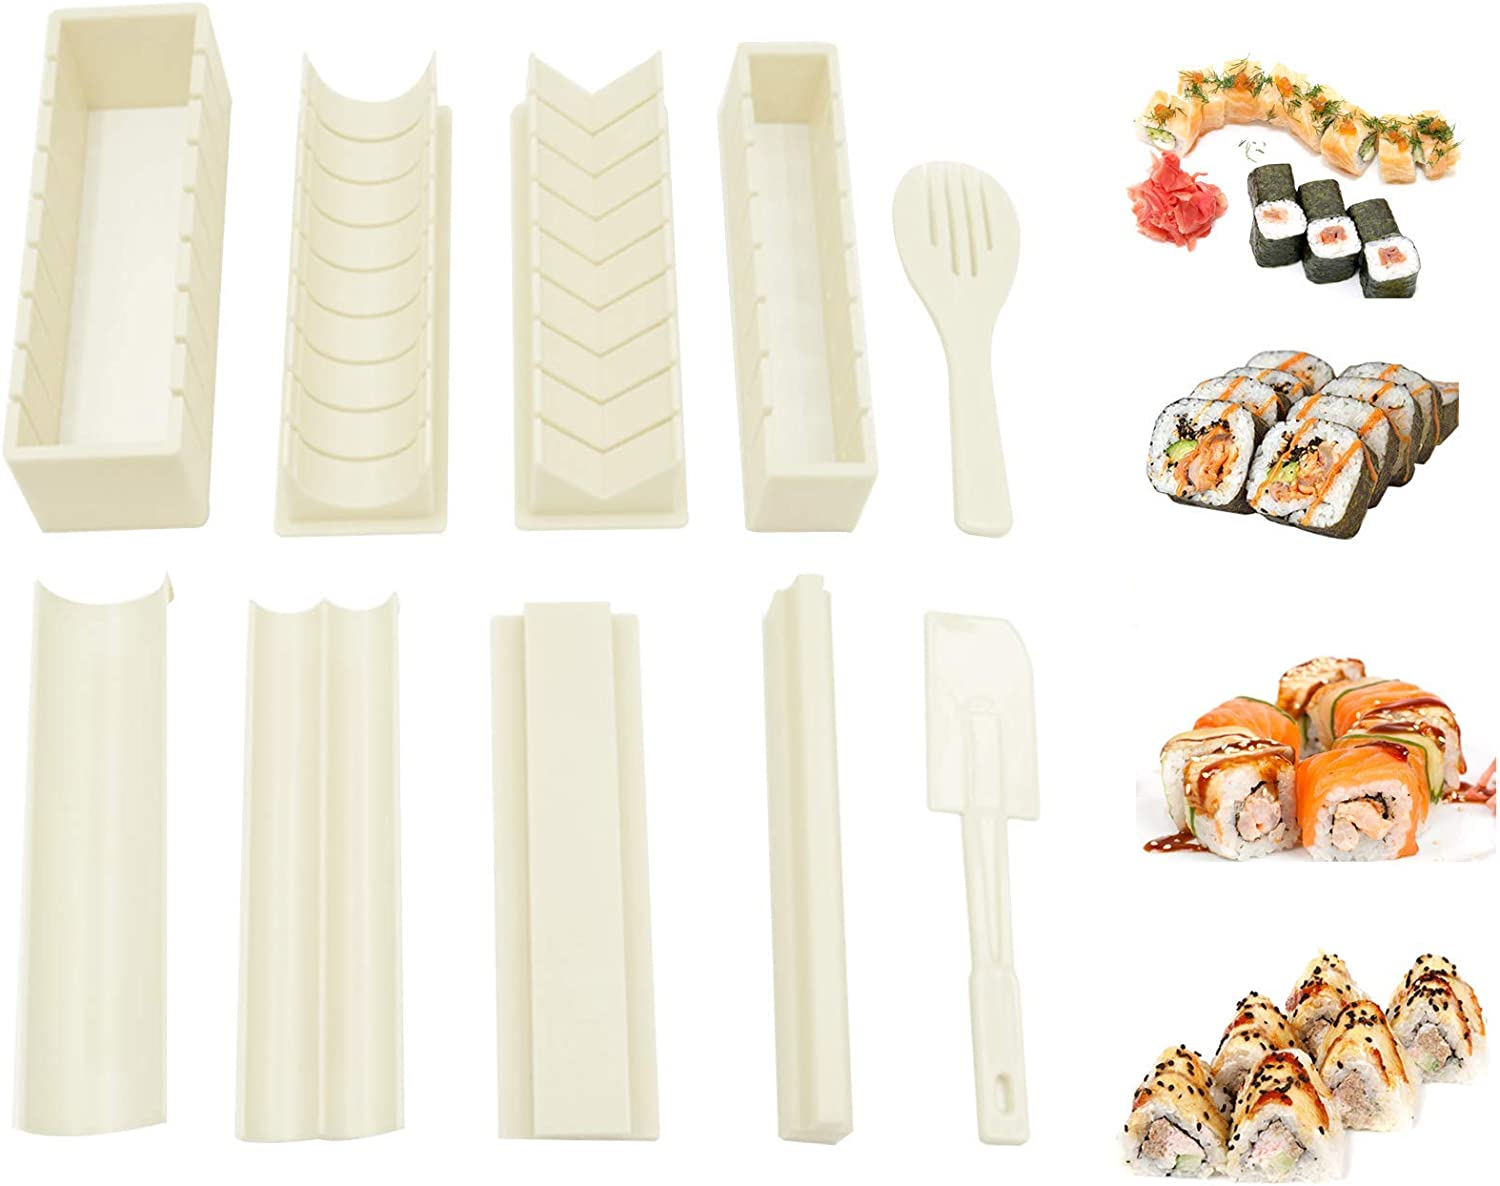 WITBASS 10 Pieces DIY Home Sushi Making tool Kit with Complete Sushi Set, Plastic Sushi Maker Tool Complete with 8 Sushi Rice Roll Mold Shapes Fork Spatula